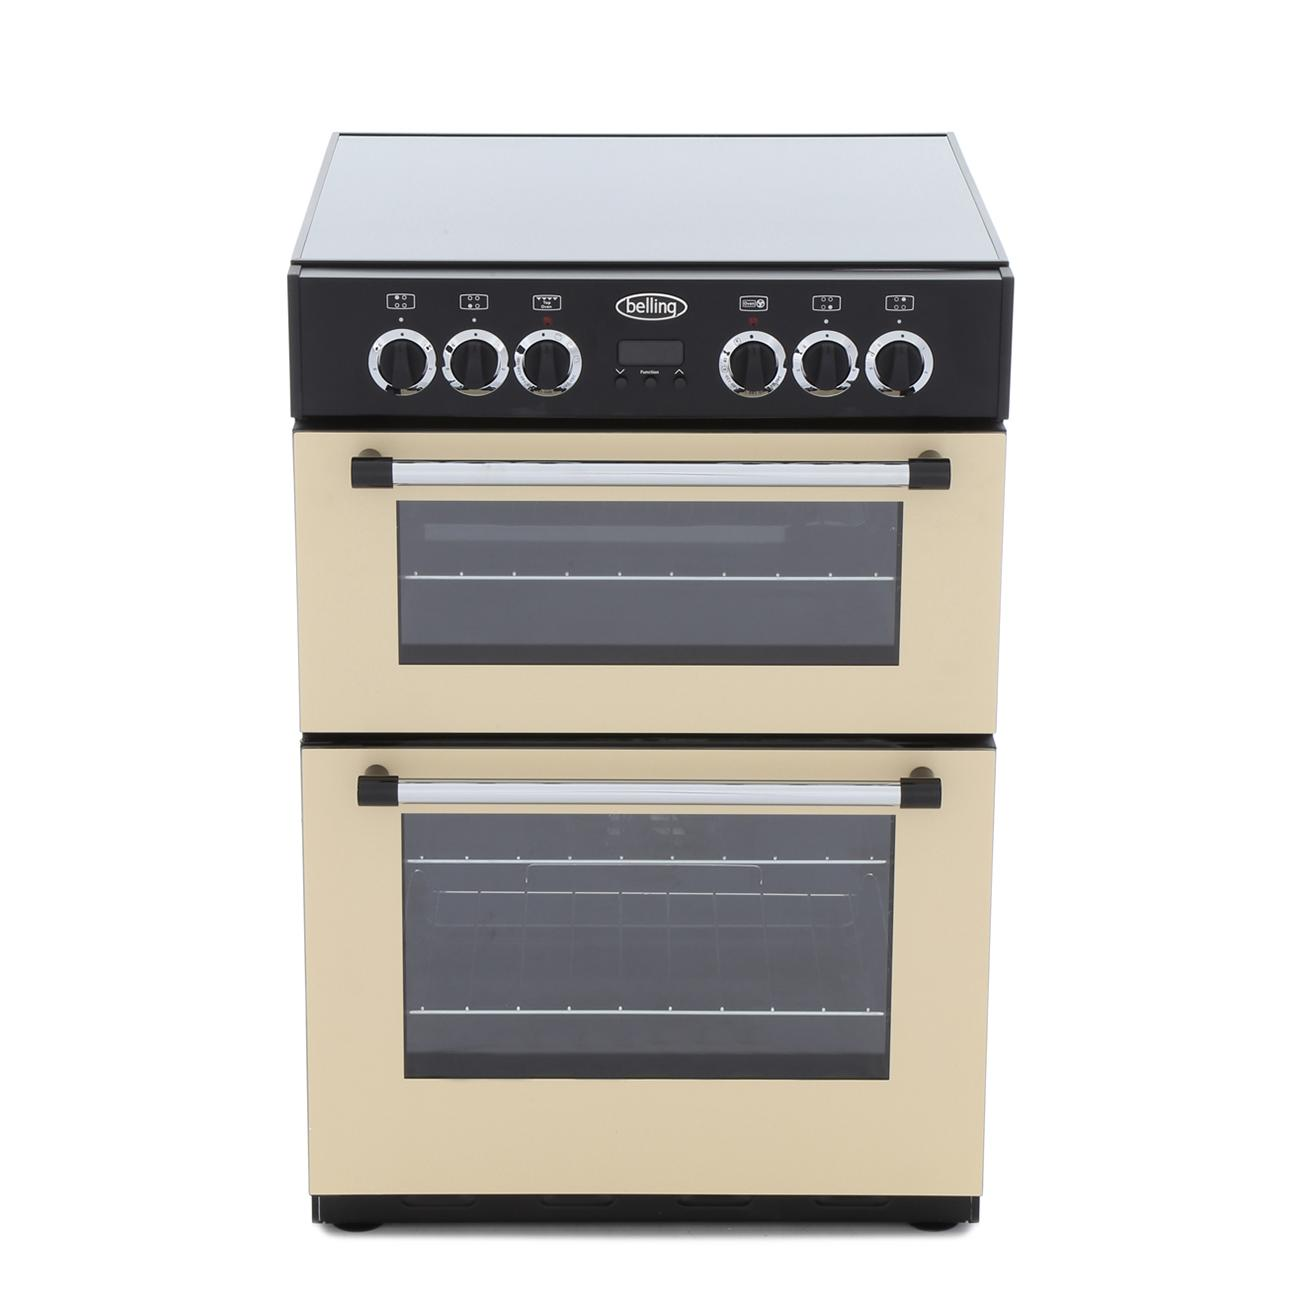 Belling Classic 60E Cream Ceramic Electric Cooker with Double Oven